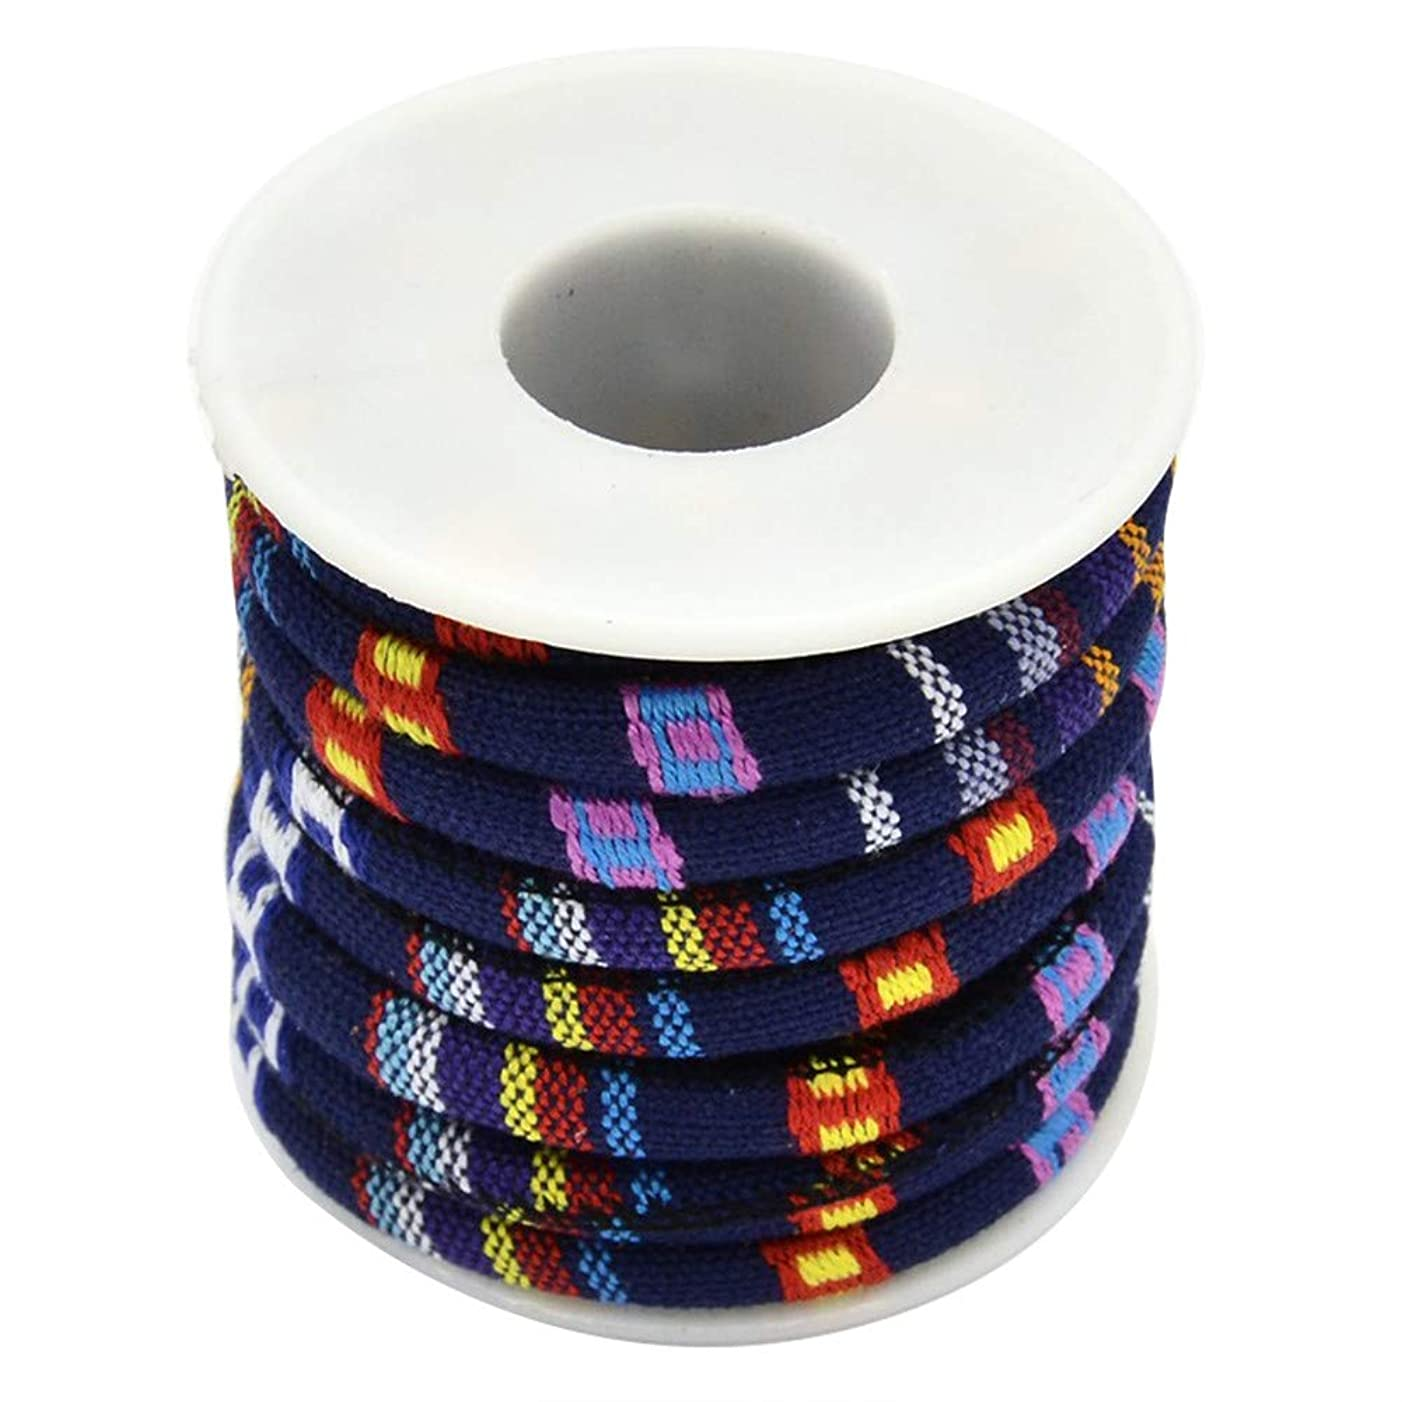 ARRICRAFT 2 Rolls Rope Cloth Ethnic Cords 6mm Colorful DIY Decoration Threads and Cords for Bracelet and Necklace Making, About 5yards/roll